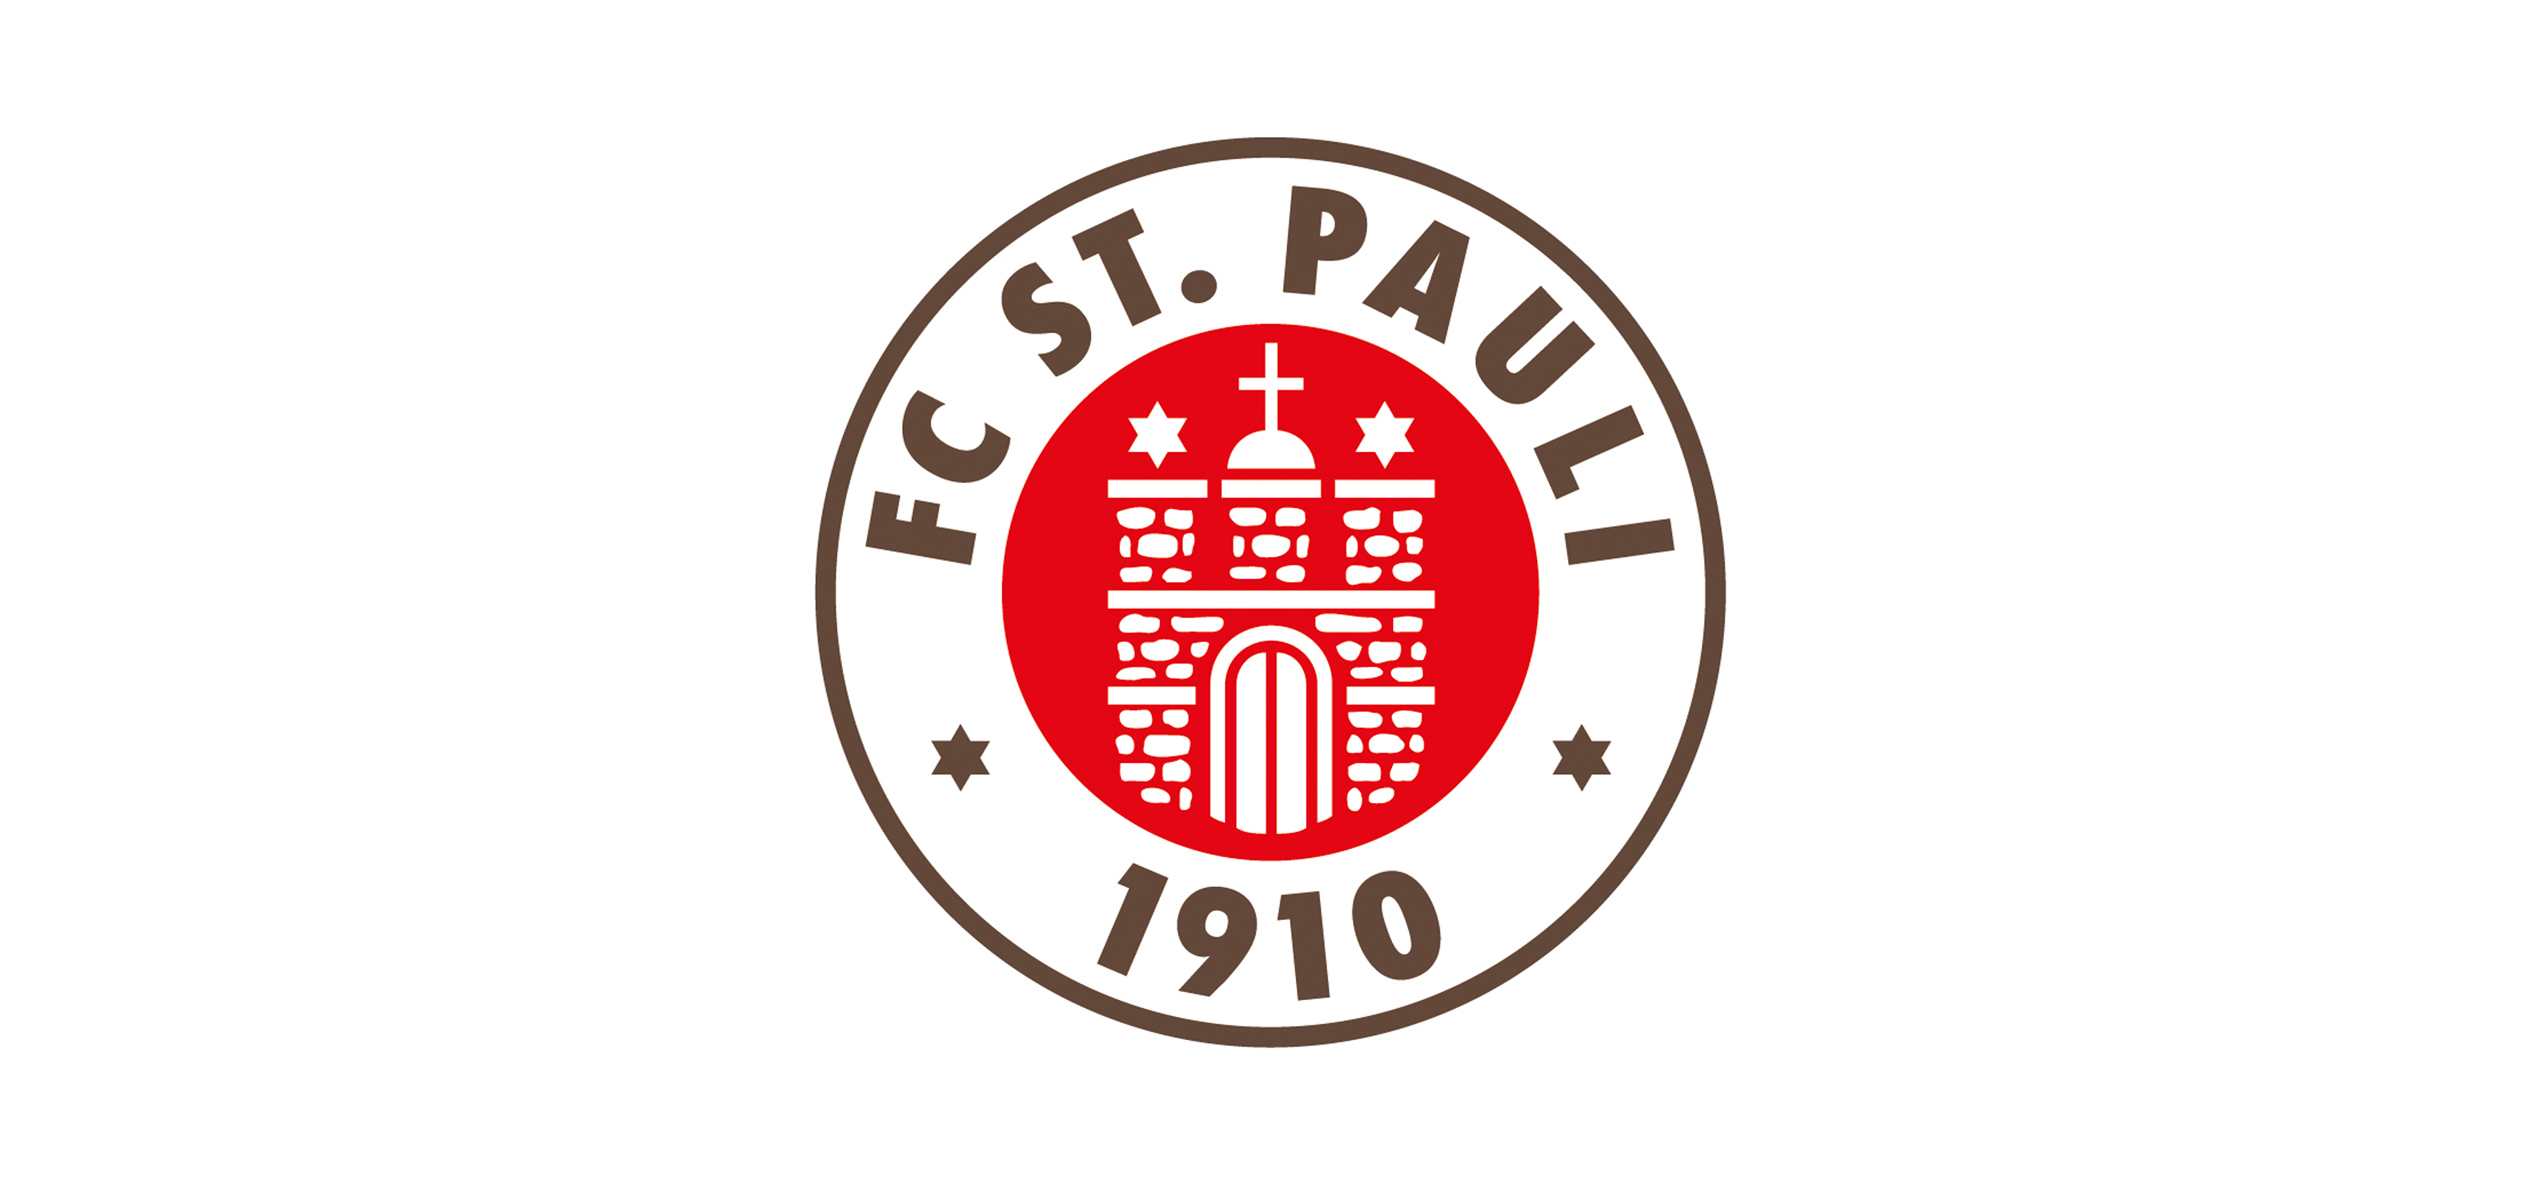 freistellung thomas meggle fc st pauli. Black Bedroom Furniture Sets. Home Design Ideas